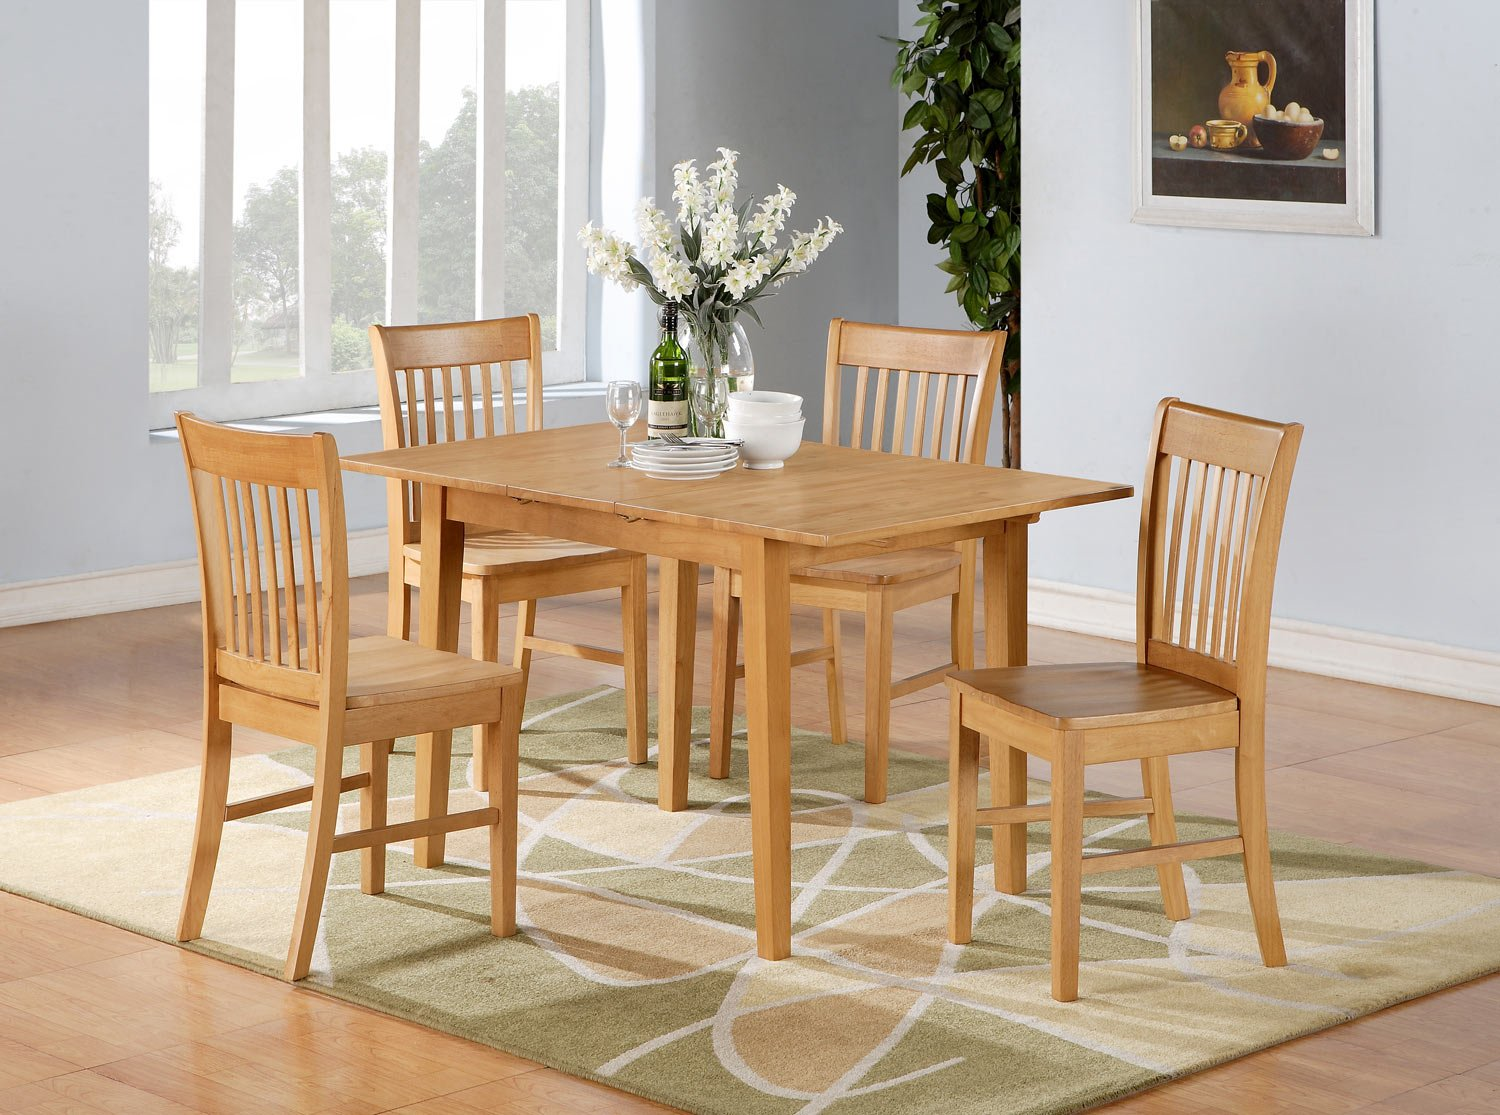 rectangular dinette table set 4 chairs in oak finish sku nf5 oak w